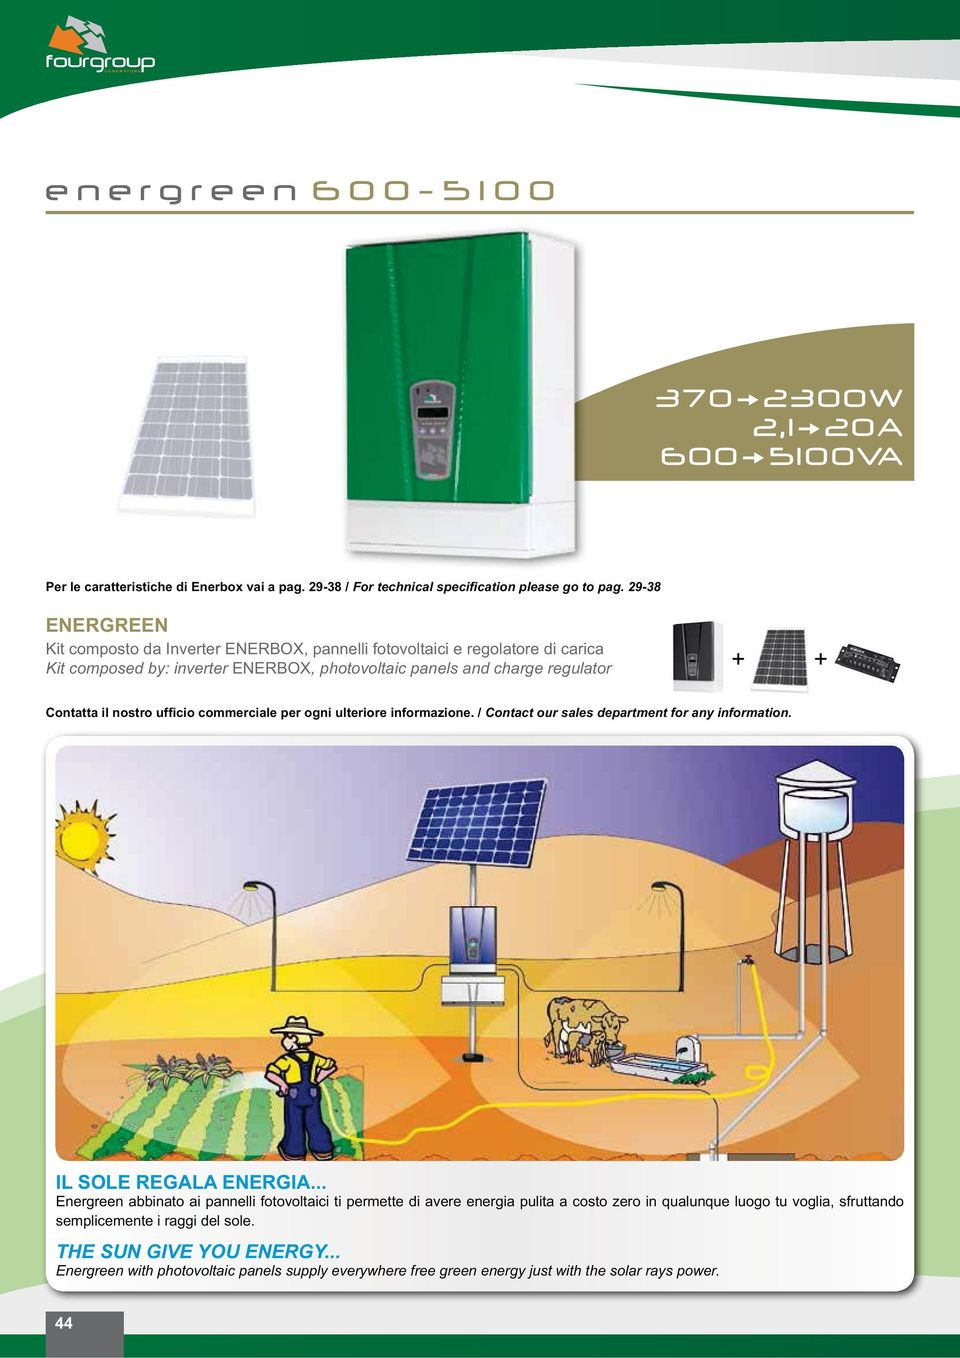 charge regulator + + Contact our sales department for any information. IL SOLE REGALA ENERGIA.